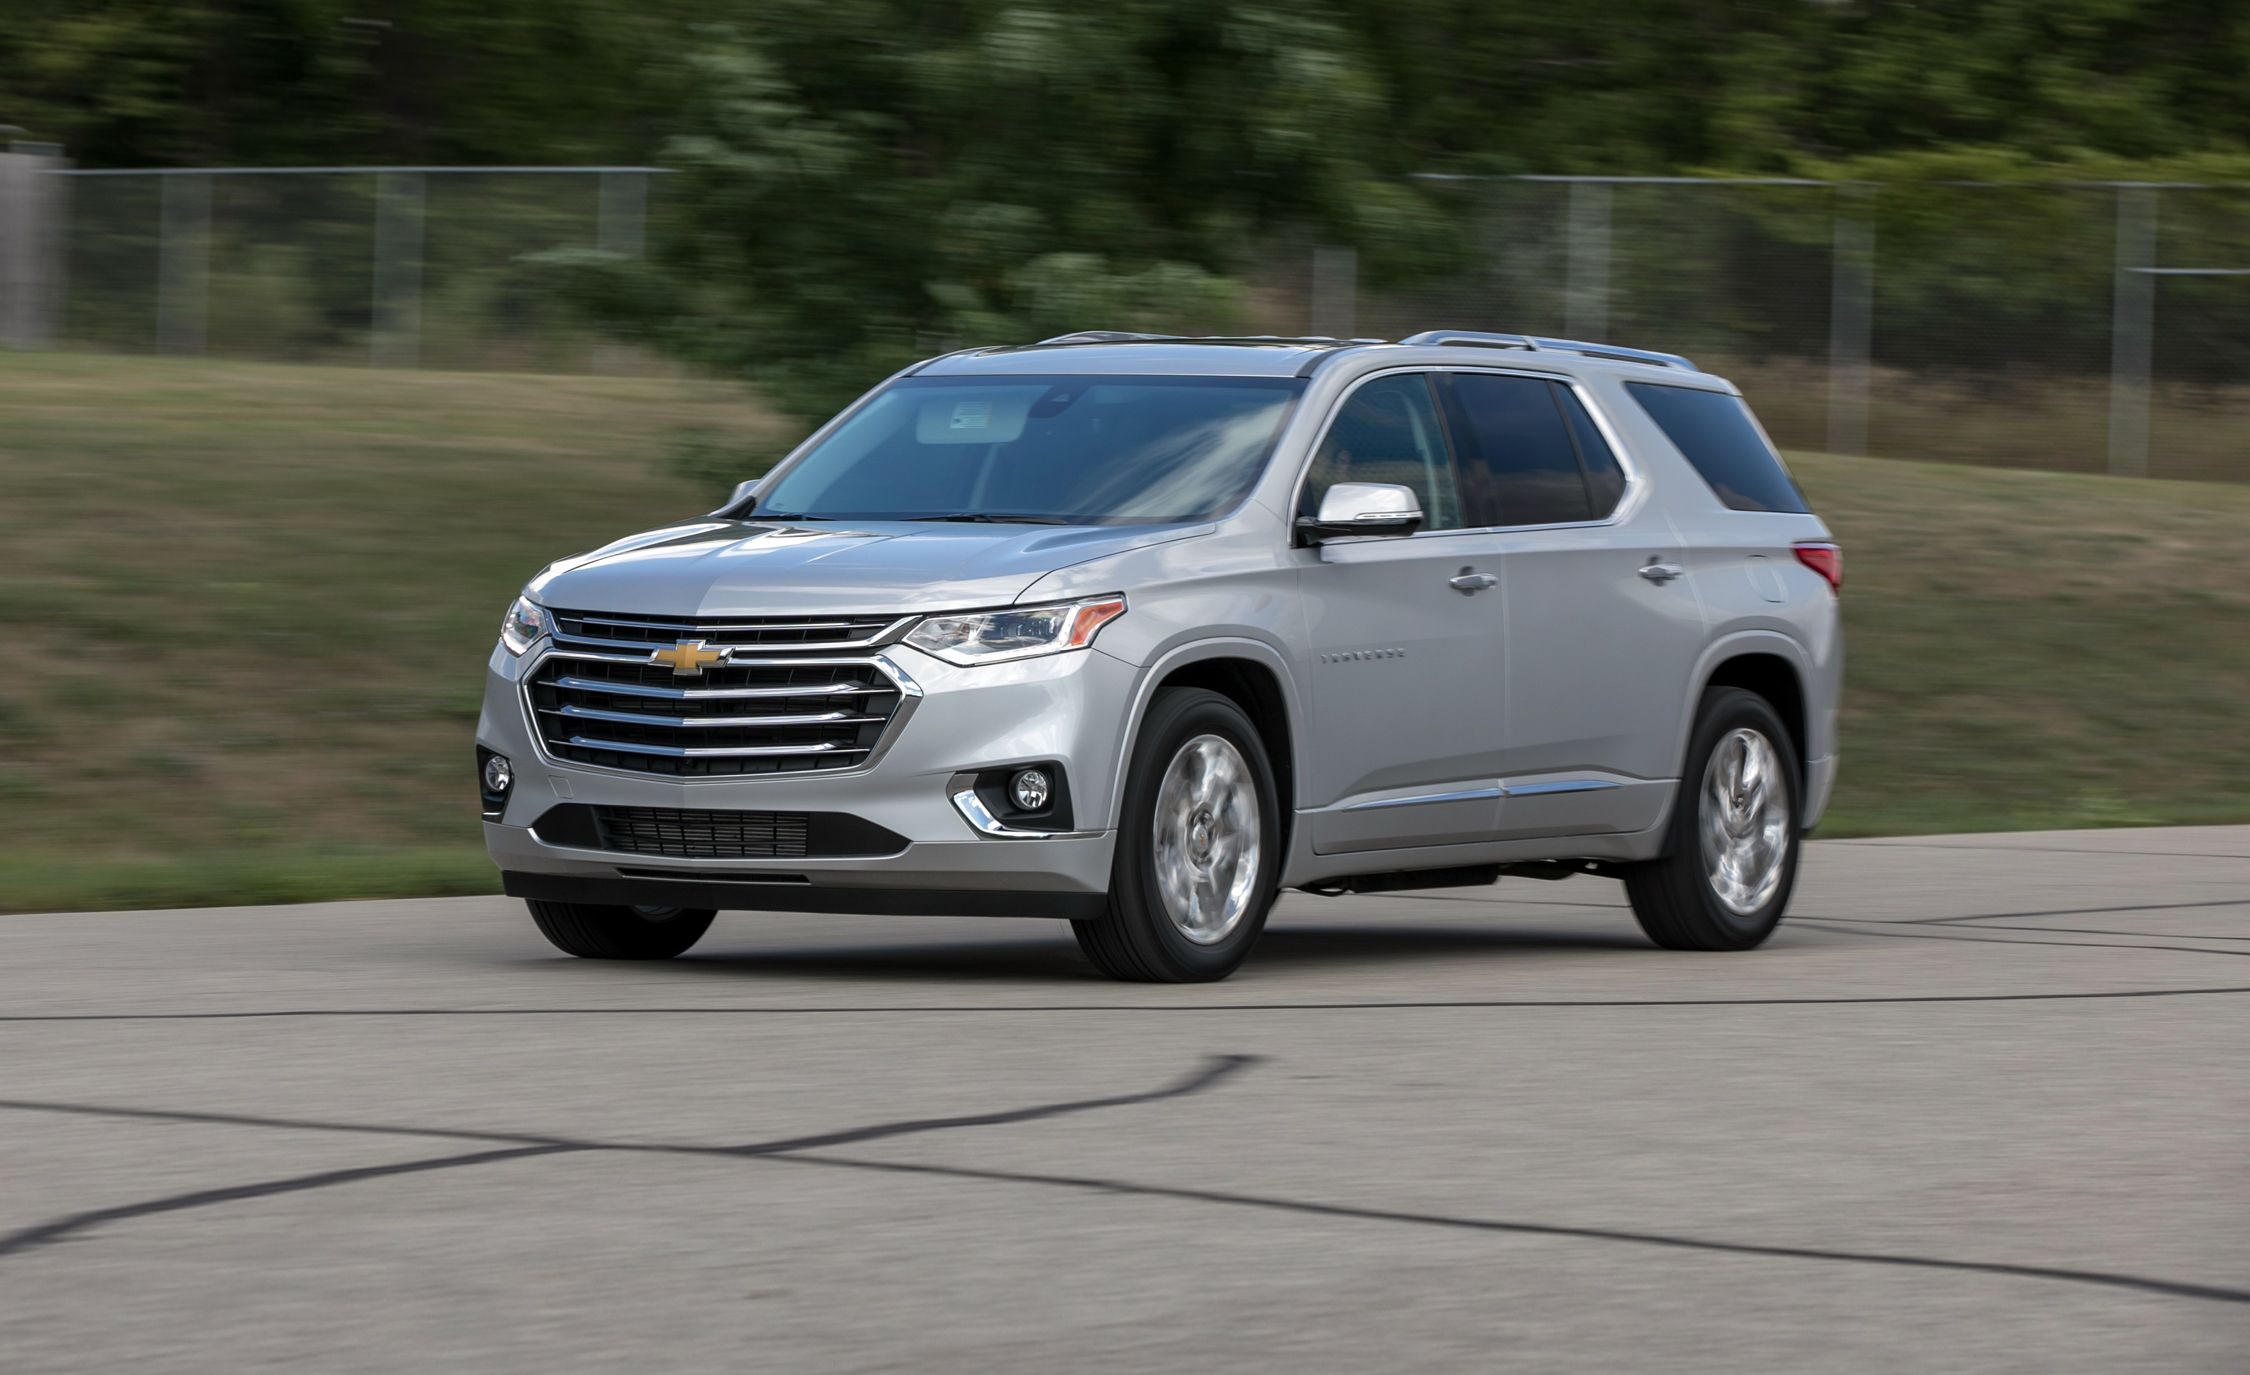 2018 chevrolet warranty.  2018 2018 chevrolet traverse in chevrolet warranty b